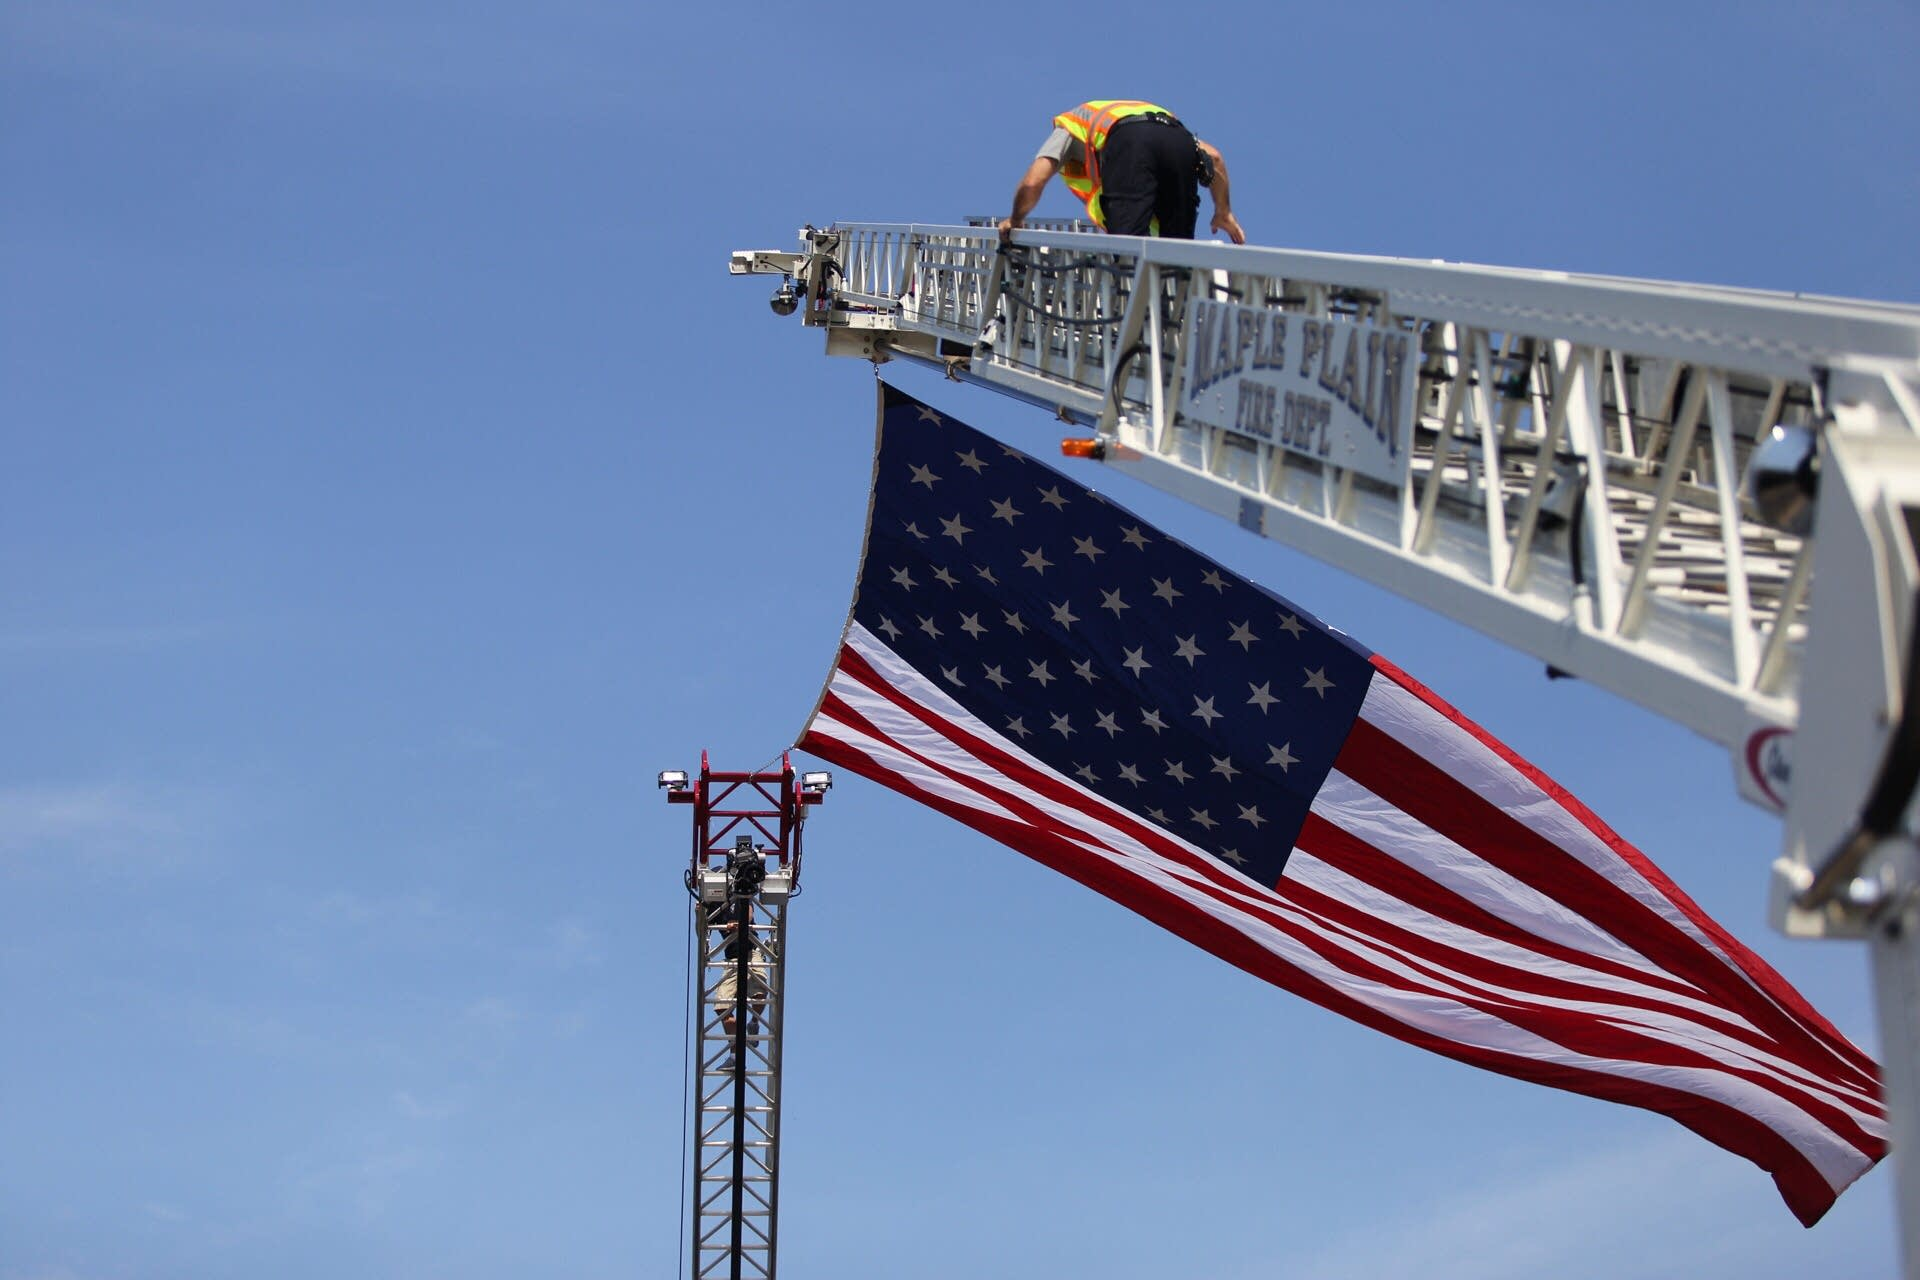 An American flag is hung between fire department trucks.